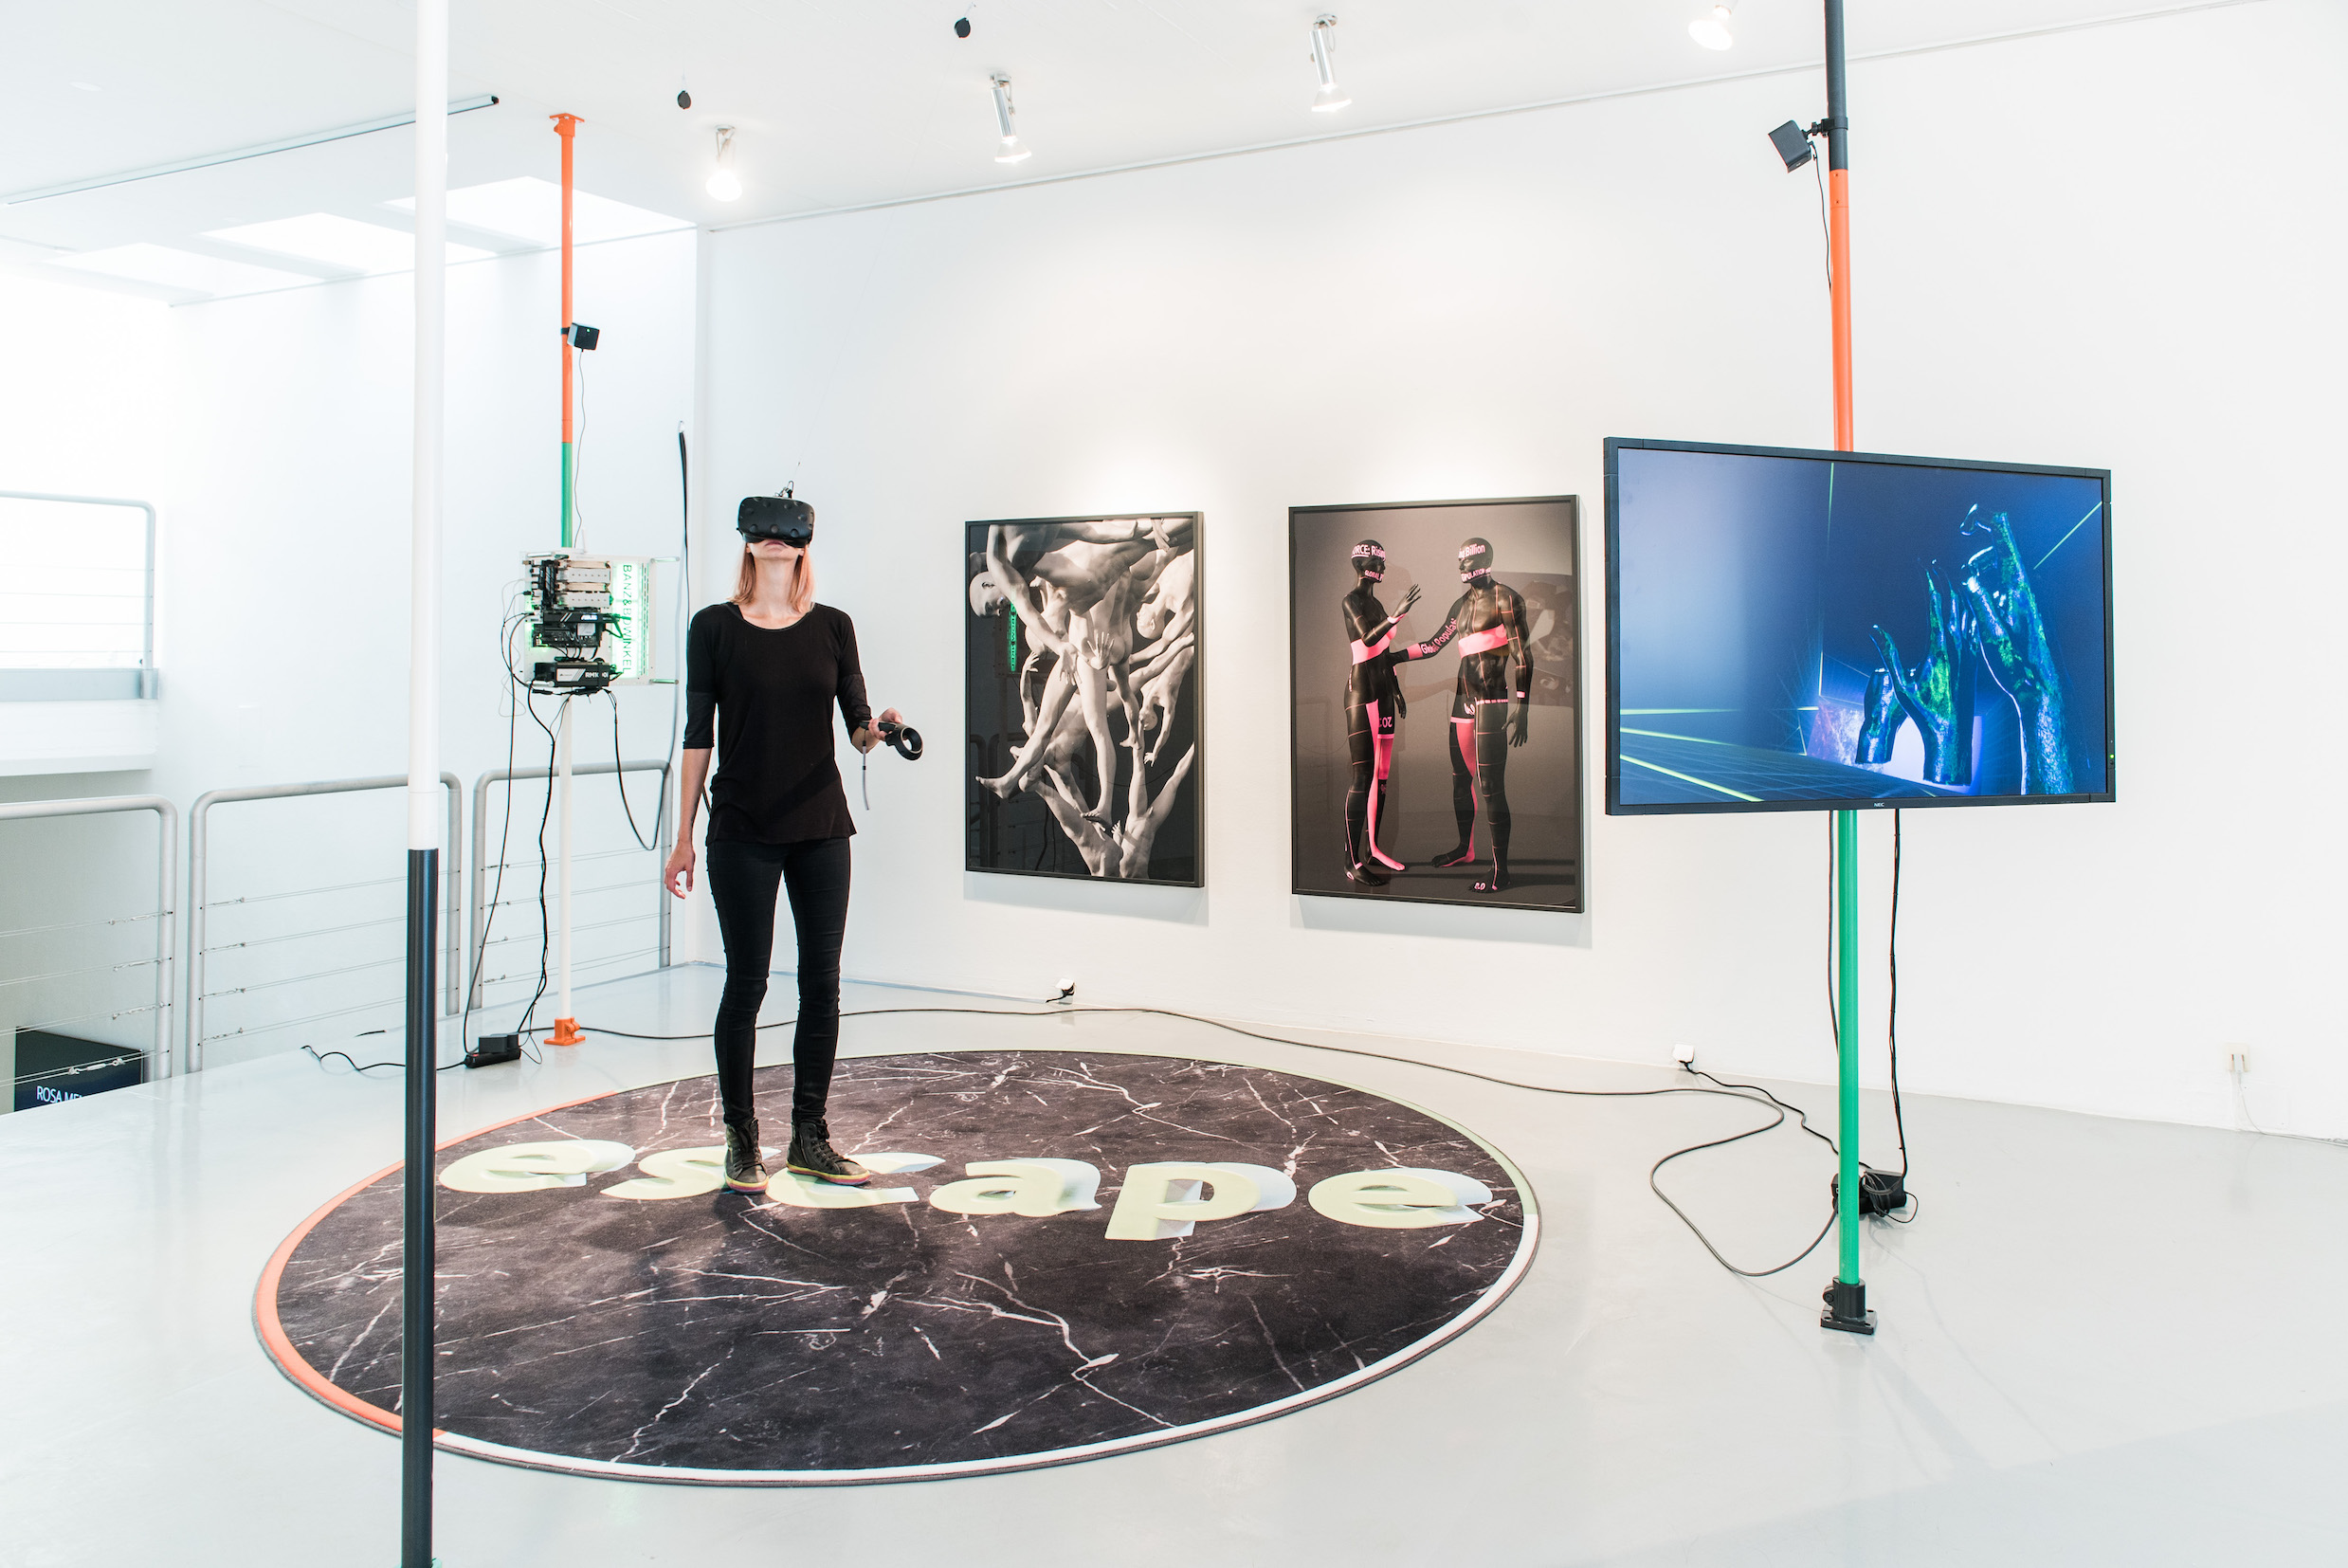 Exhibition view RESET III AND VIRTUAL REALITY, photo by Nathan Ishar, installation by Banz & Bowinkel